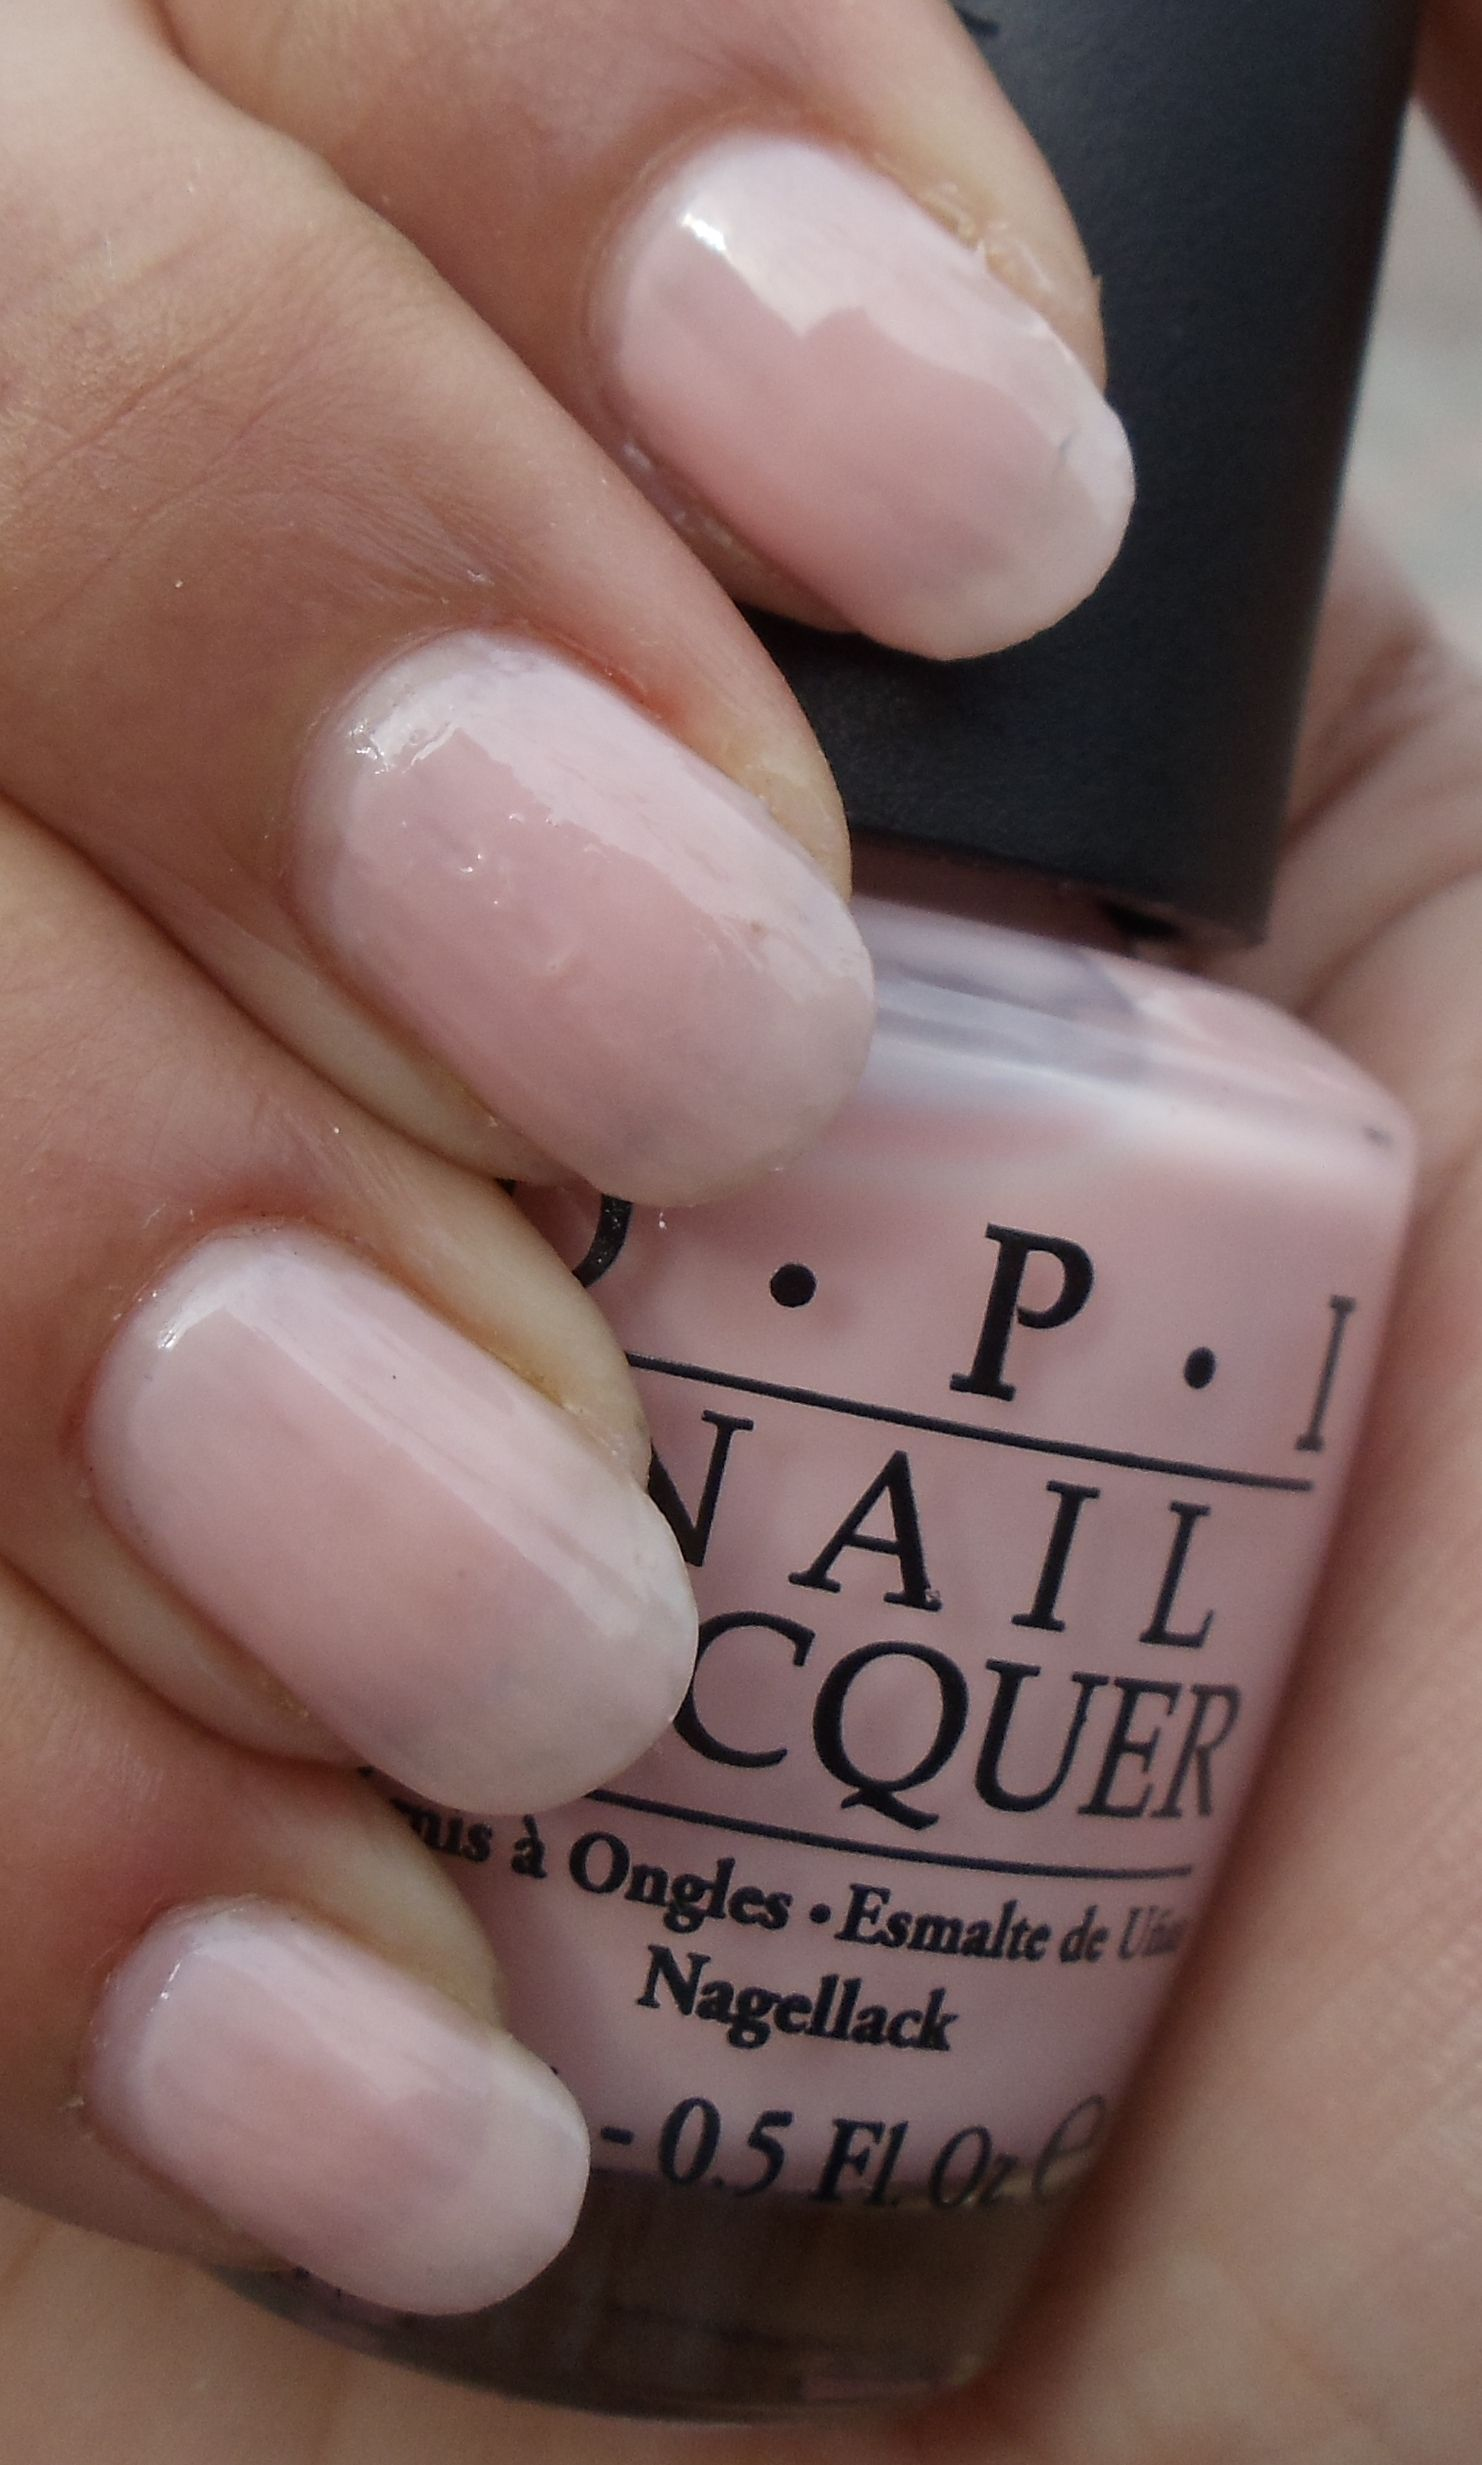 o p i privacy please nail polish swatch gallery polish